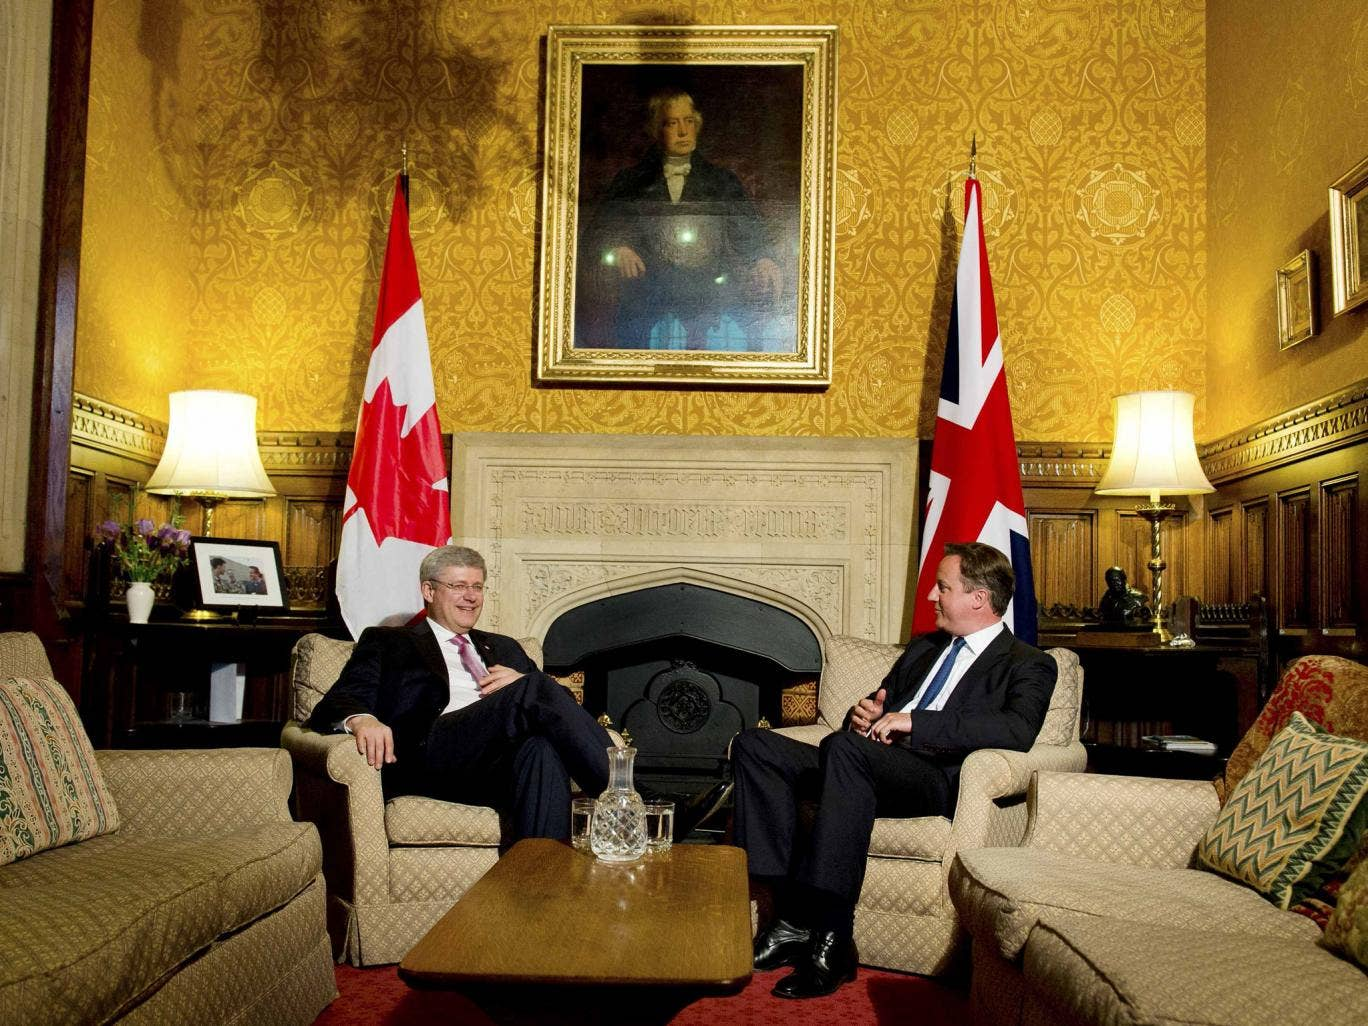 David Cameron with Stephen Harper following an address to both House of Parliament in 2013